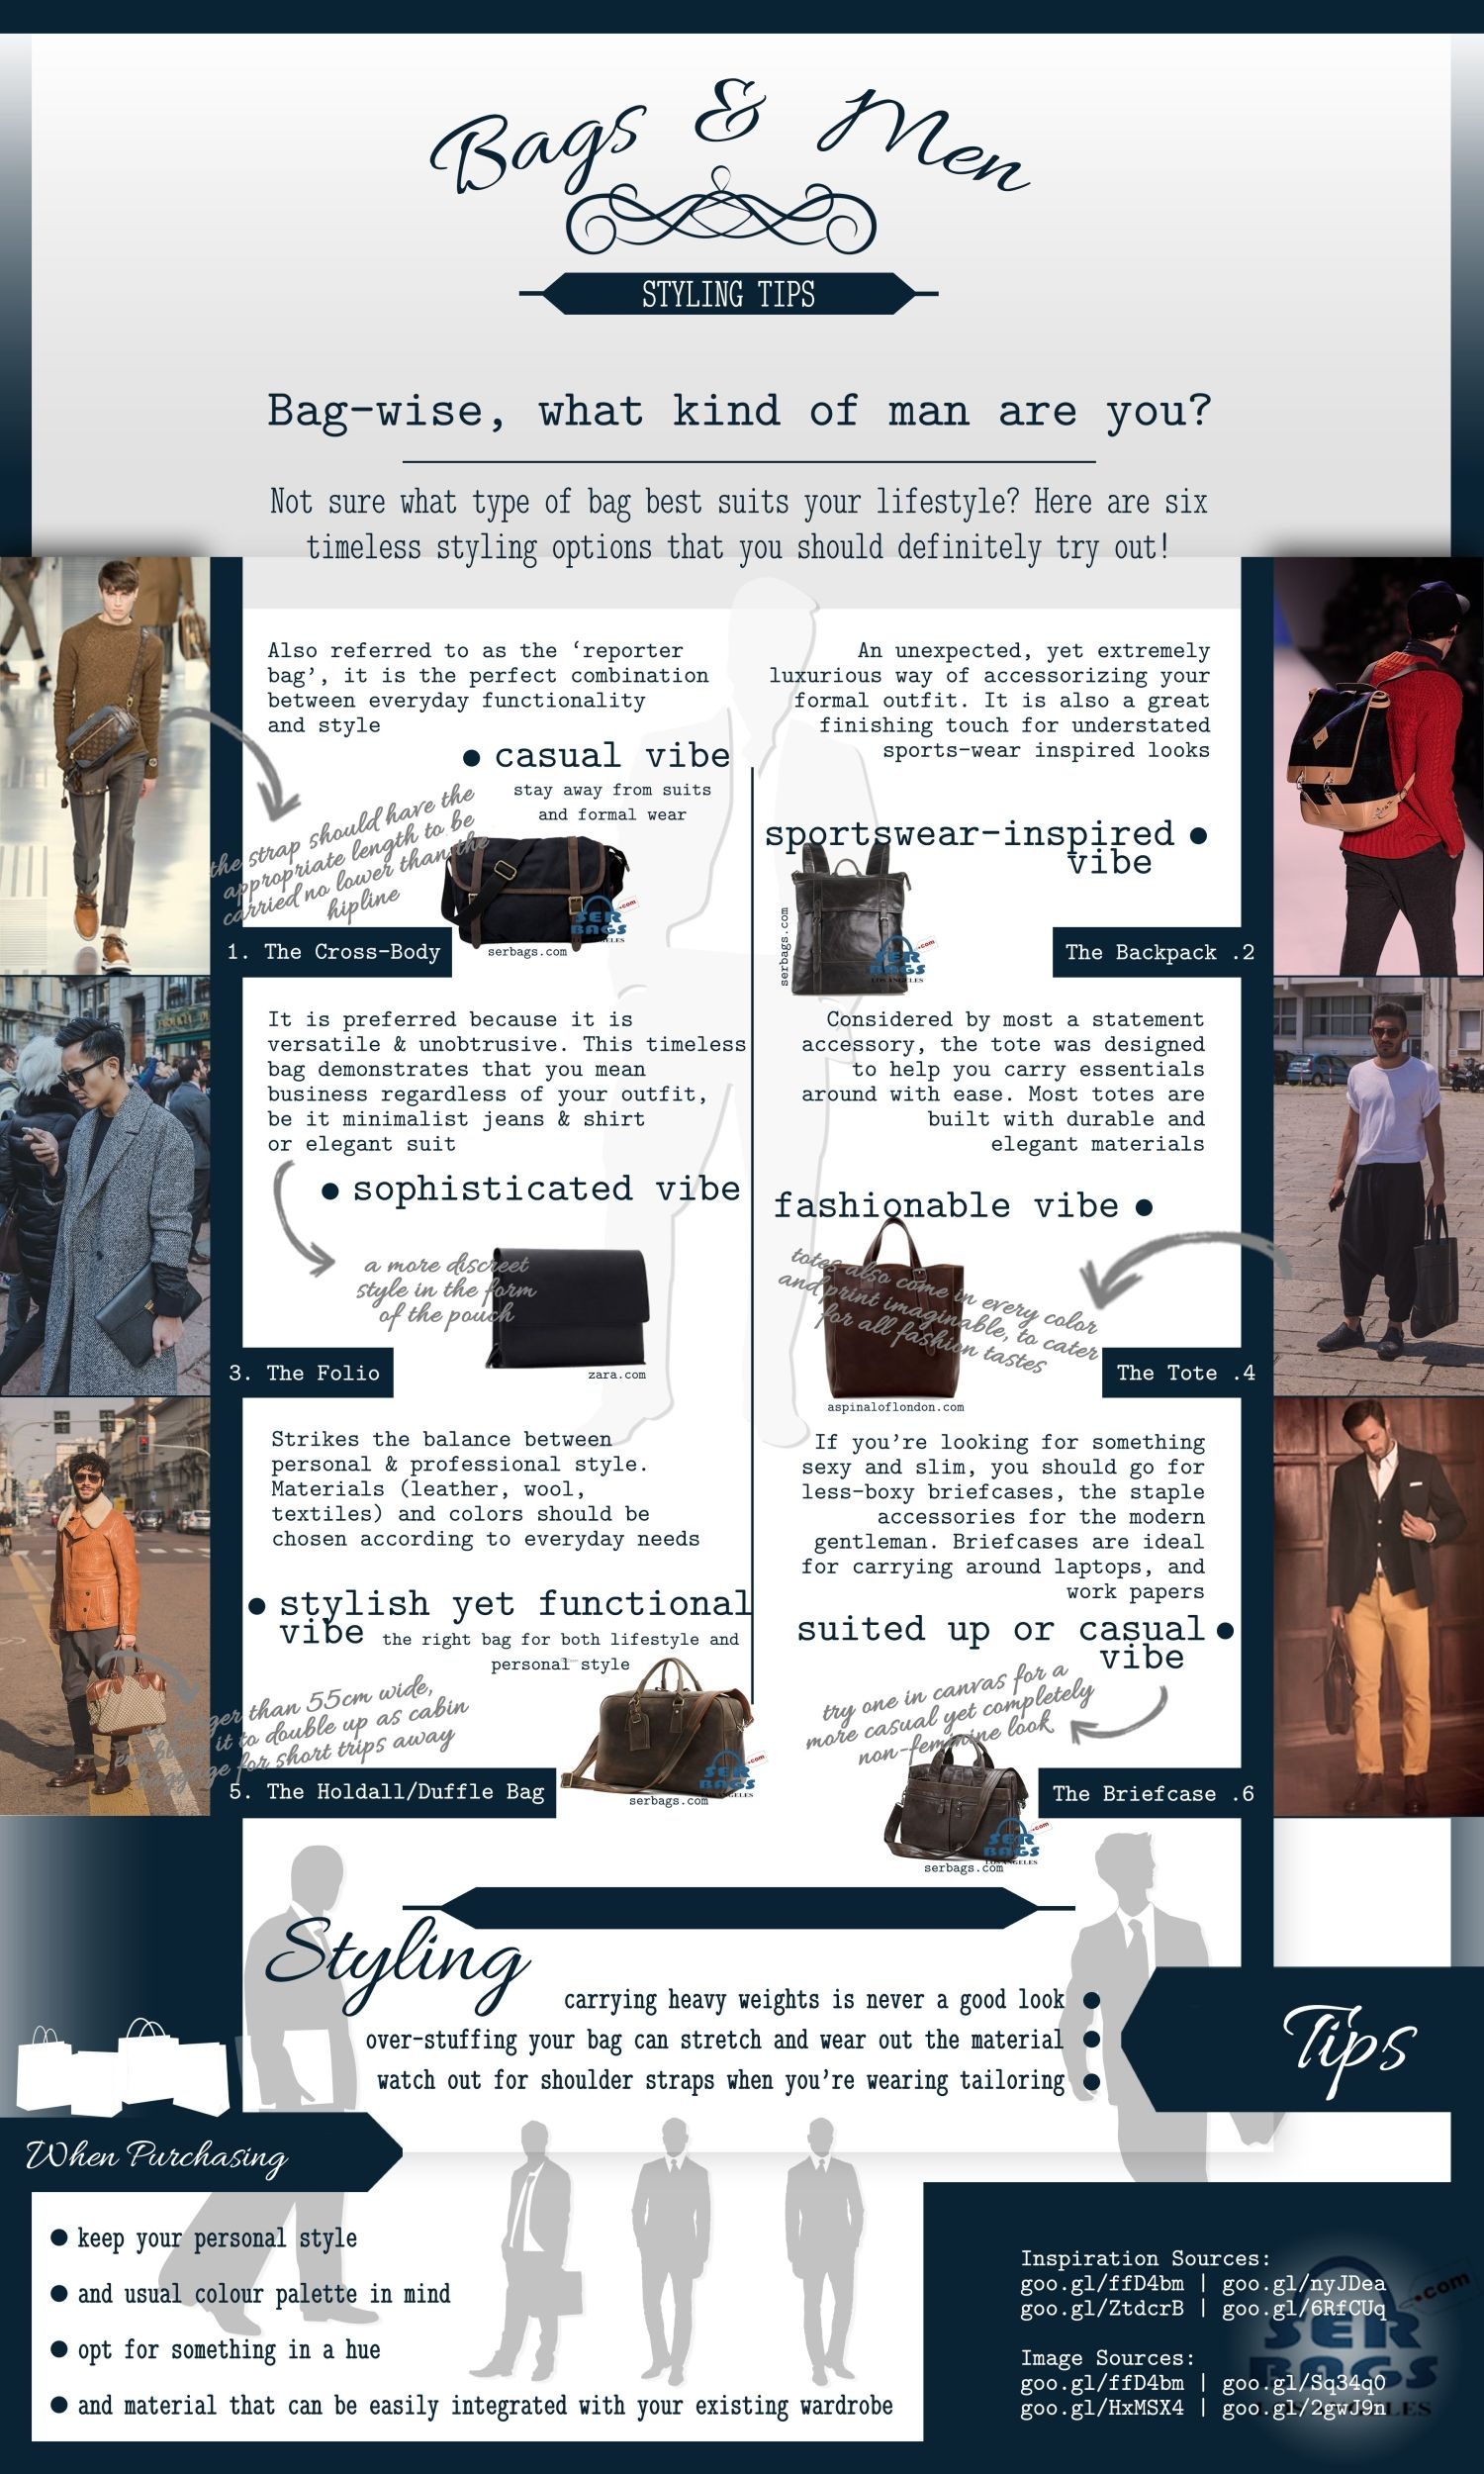 SerBags-Types-of-Bags-Infographic.jpg 1,500×2,500 pixels